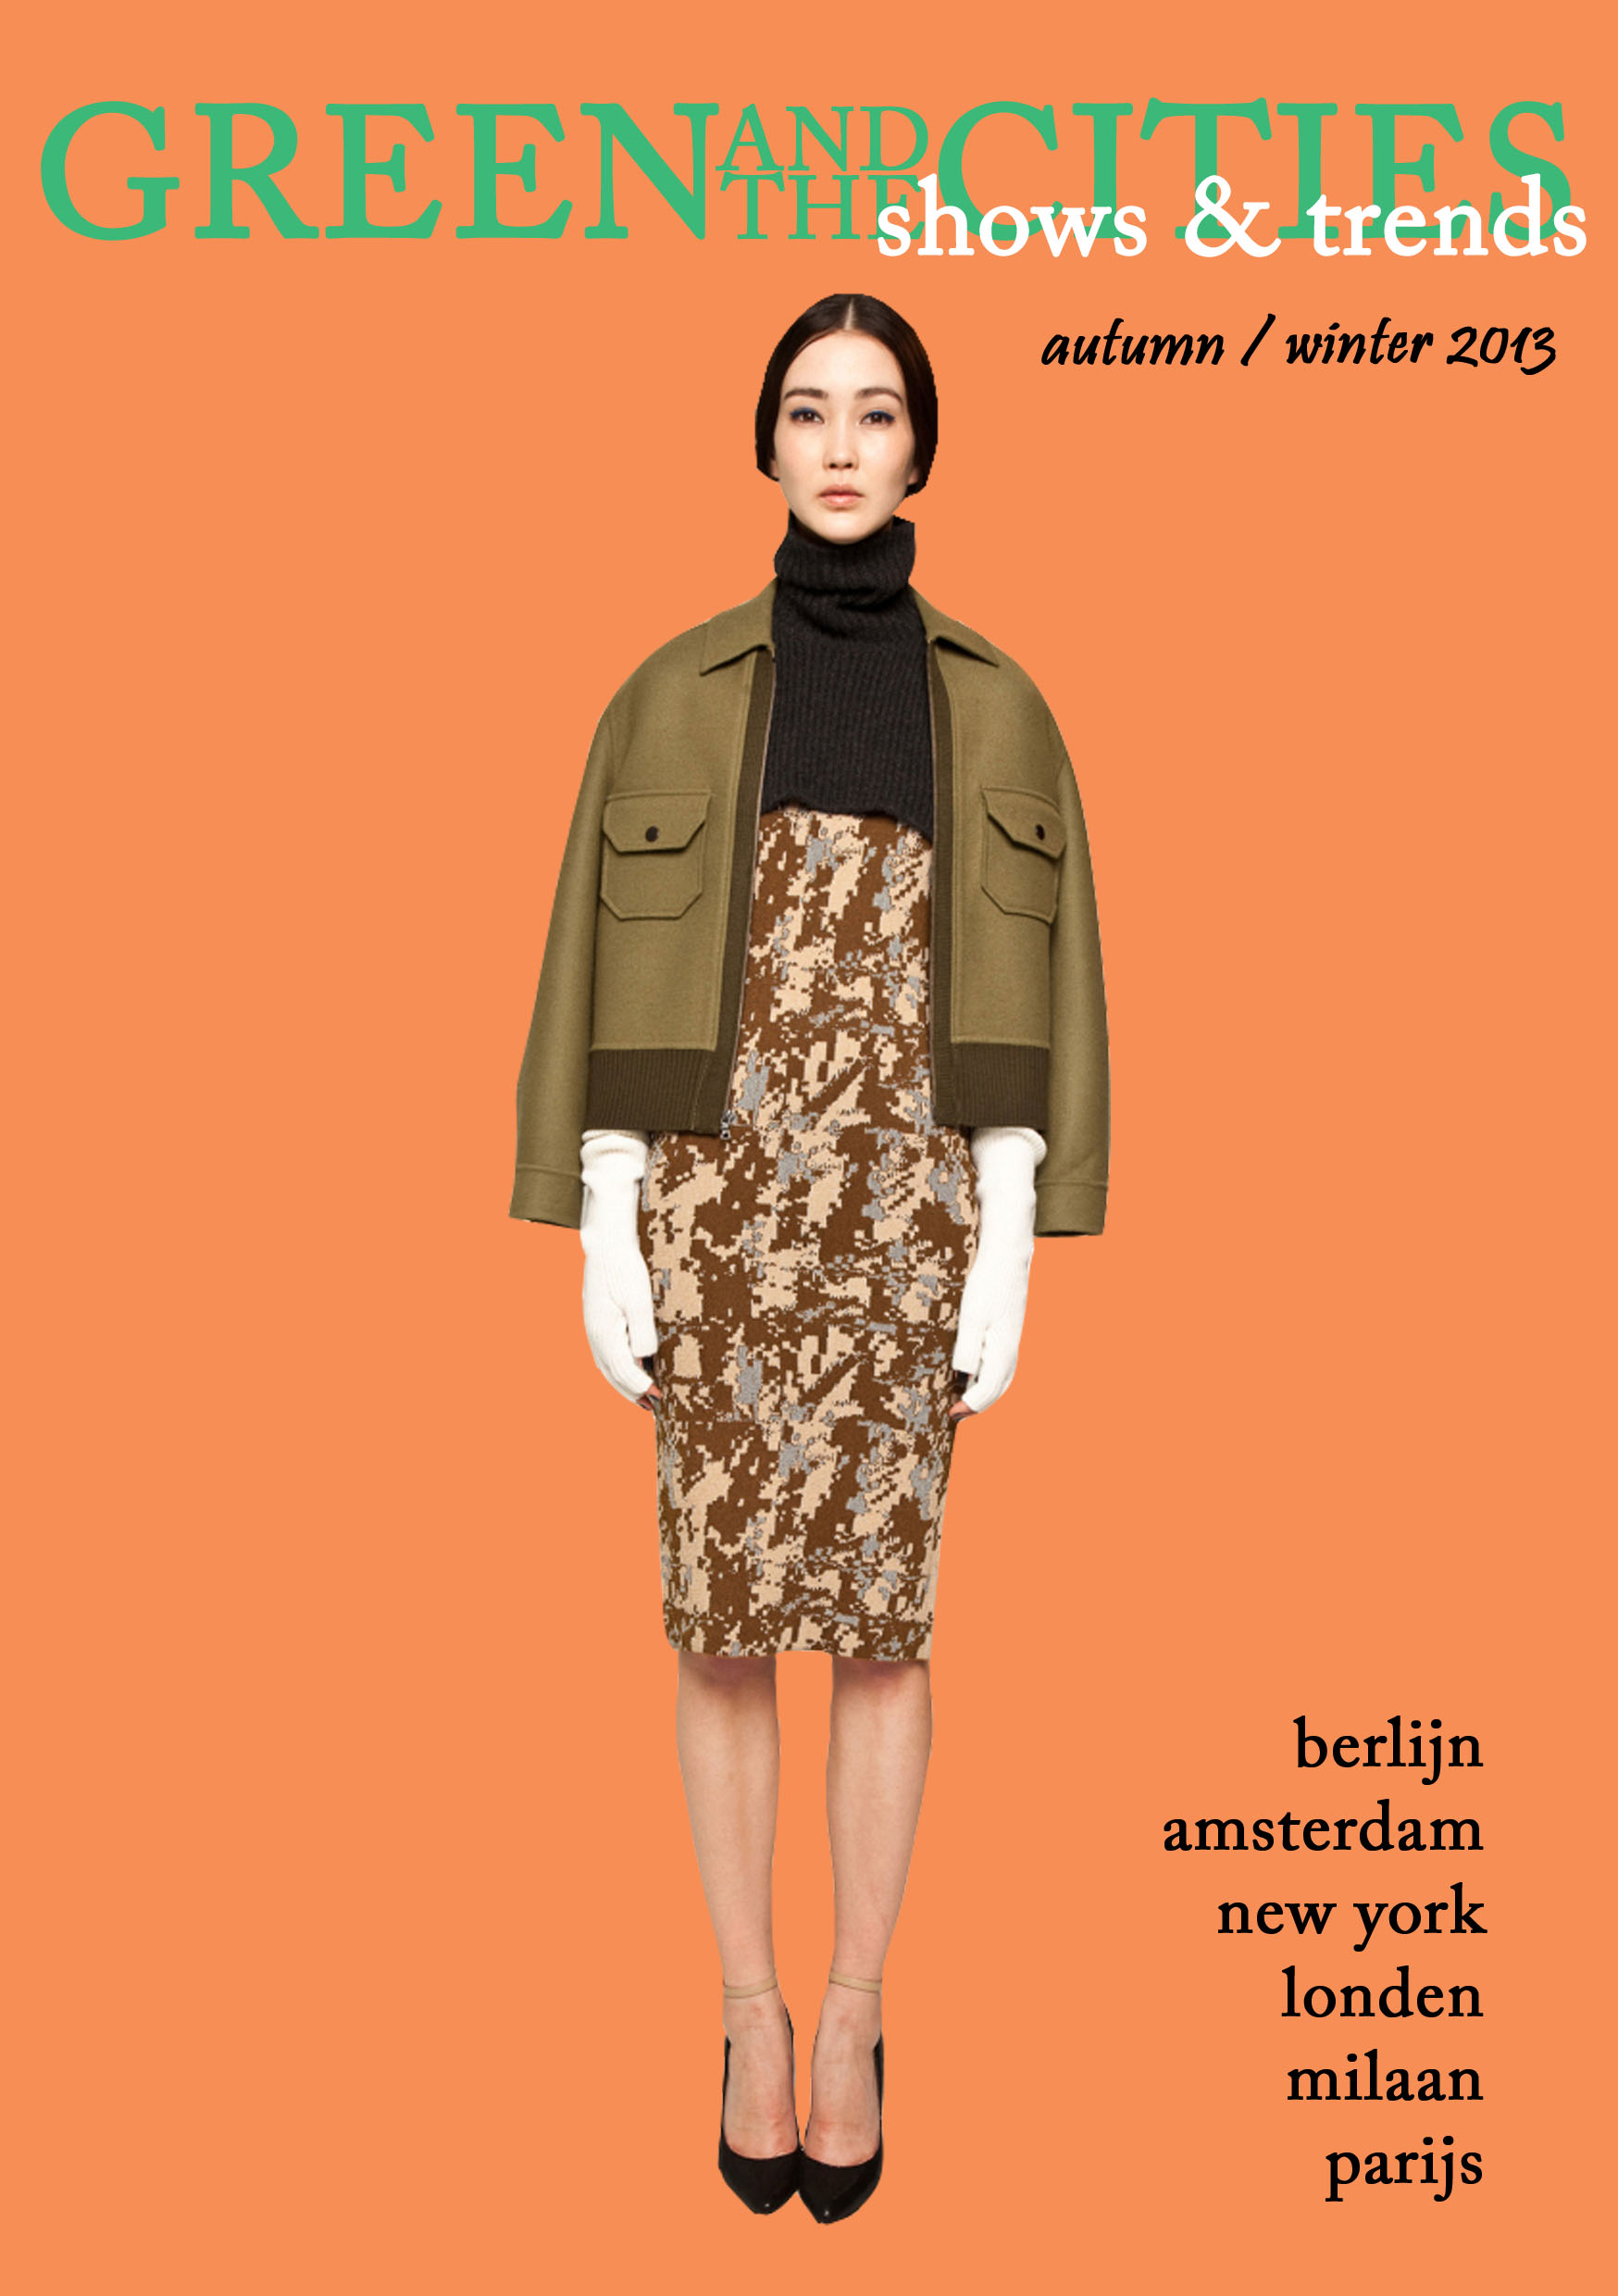 GREEN AND THE CITIES shows & trends autumn winter 2013